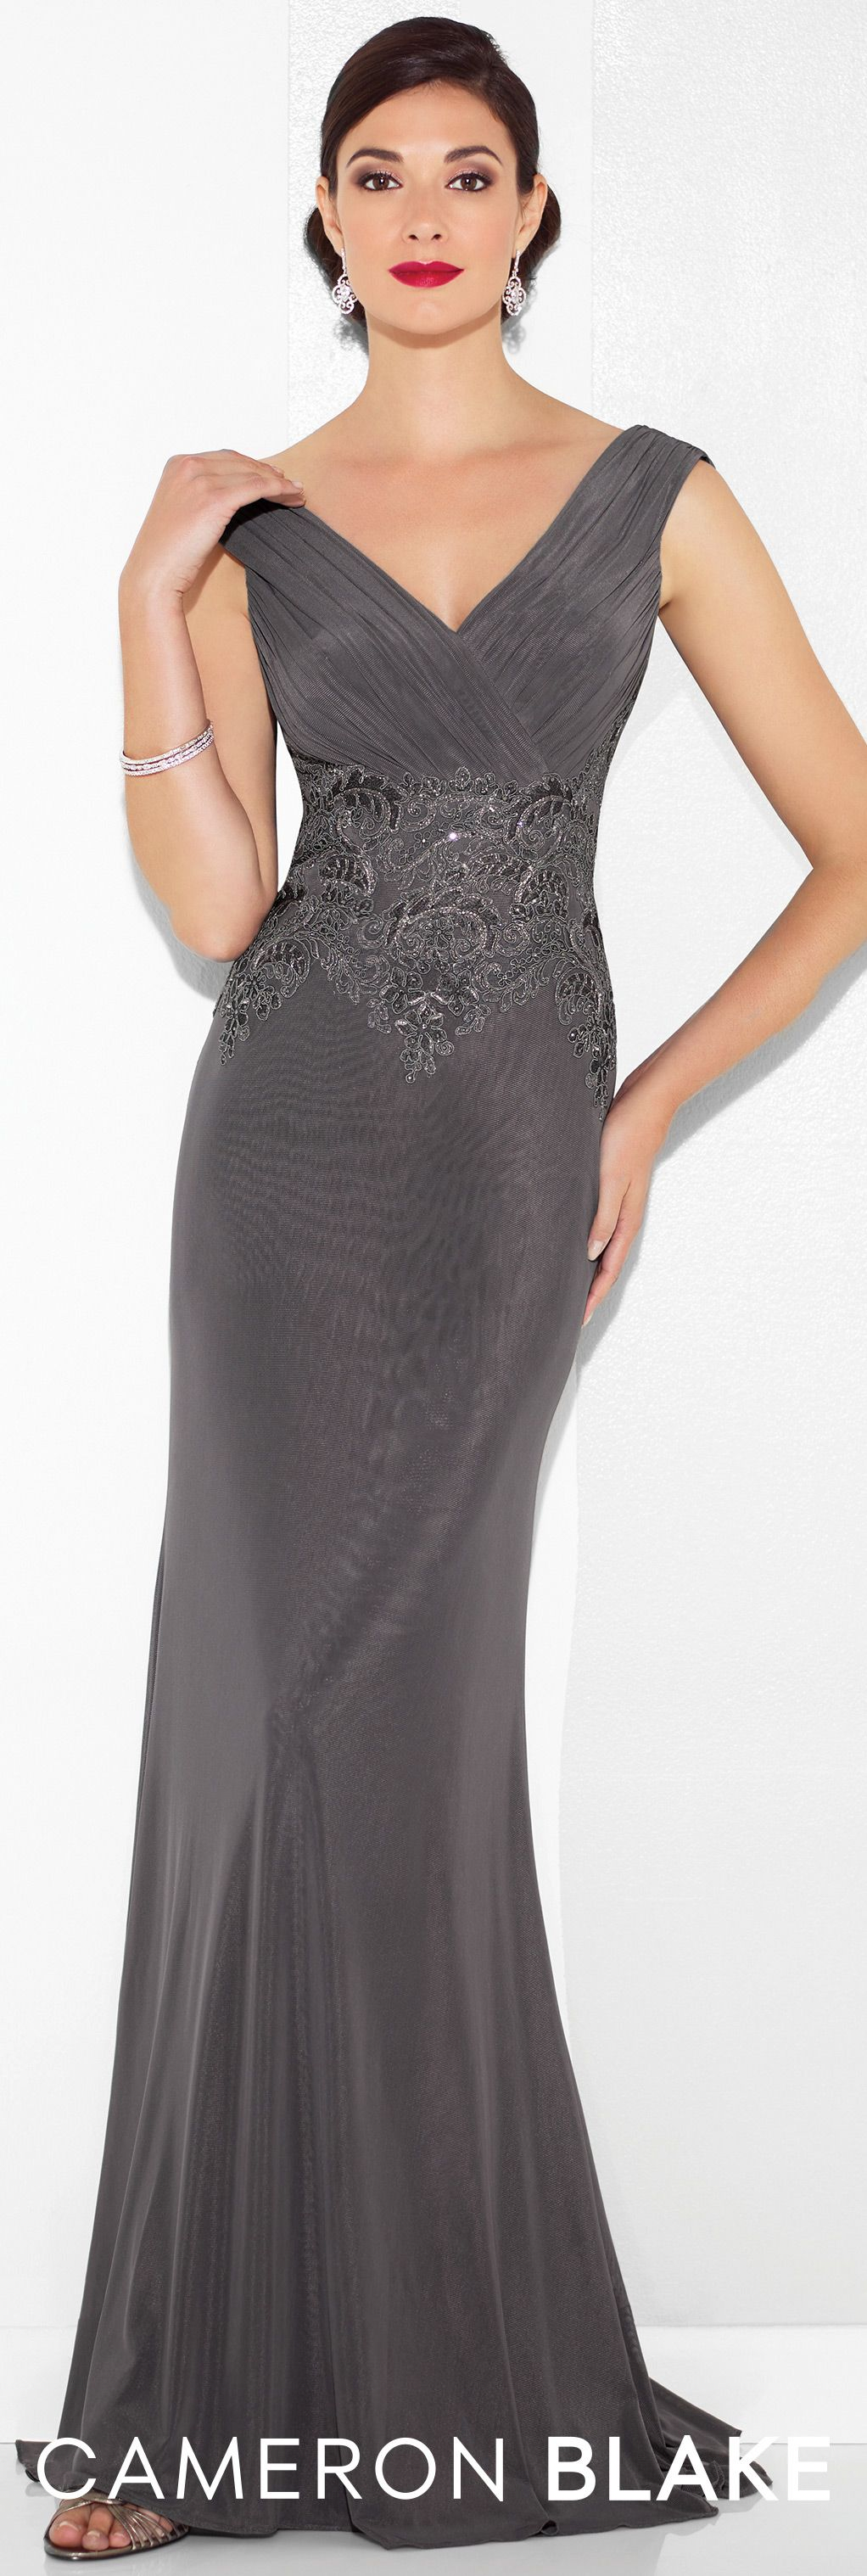 Tip-Of-The-Shoulder Fit and Flare Gown - Cameron Blake 117611 ...